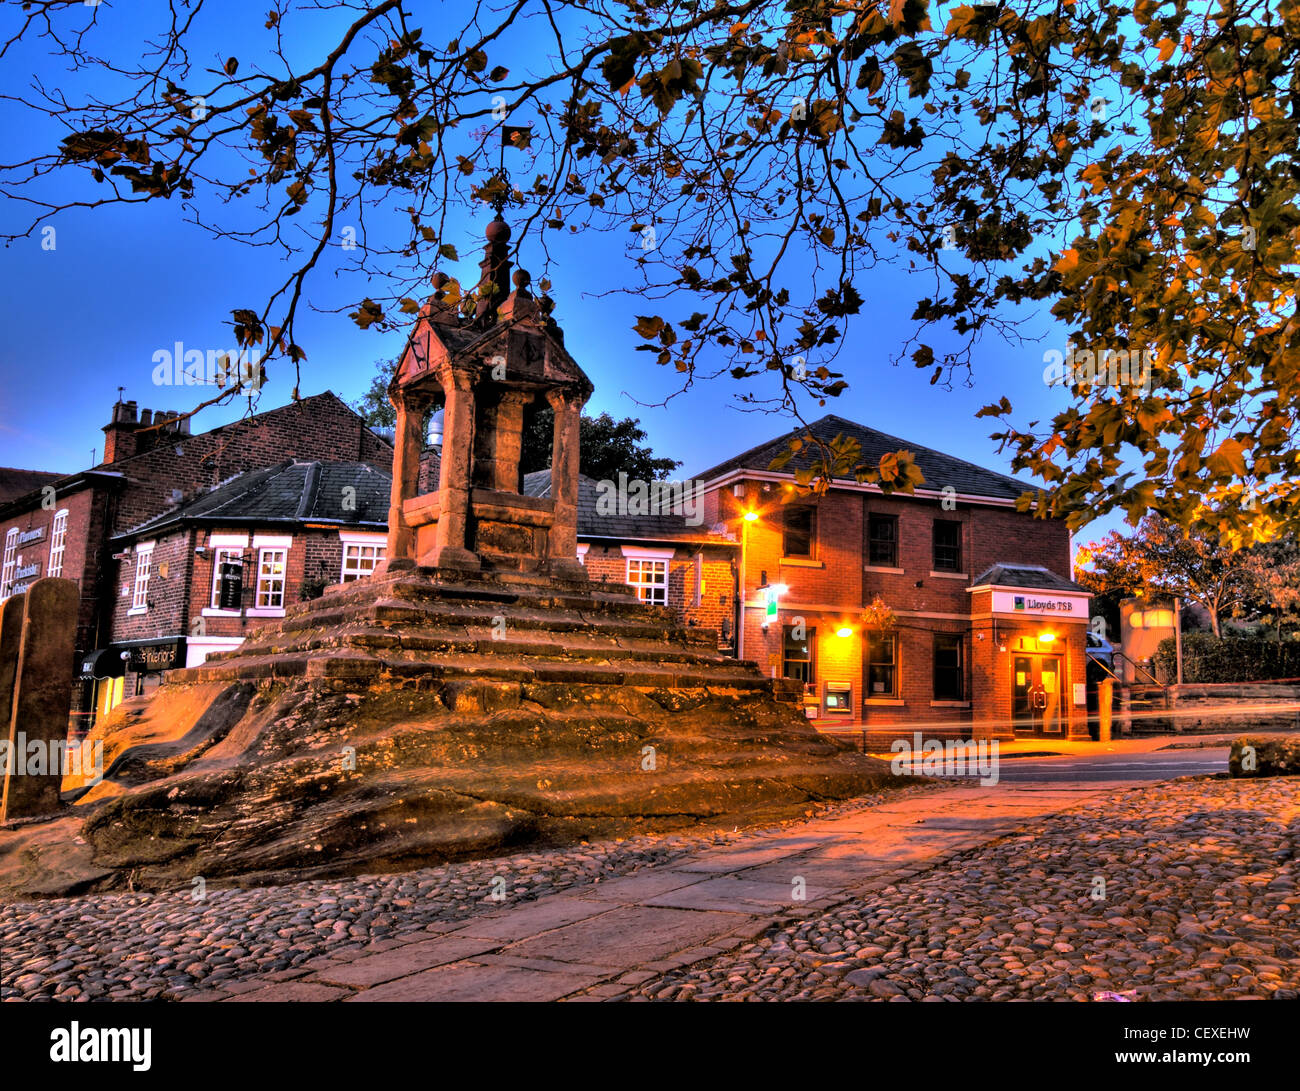 Autumn scene at Lymm Cross, Lymm village, Cheshire, England, UK Stock Photo